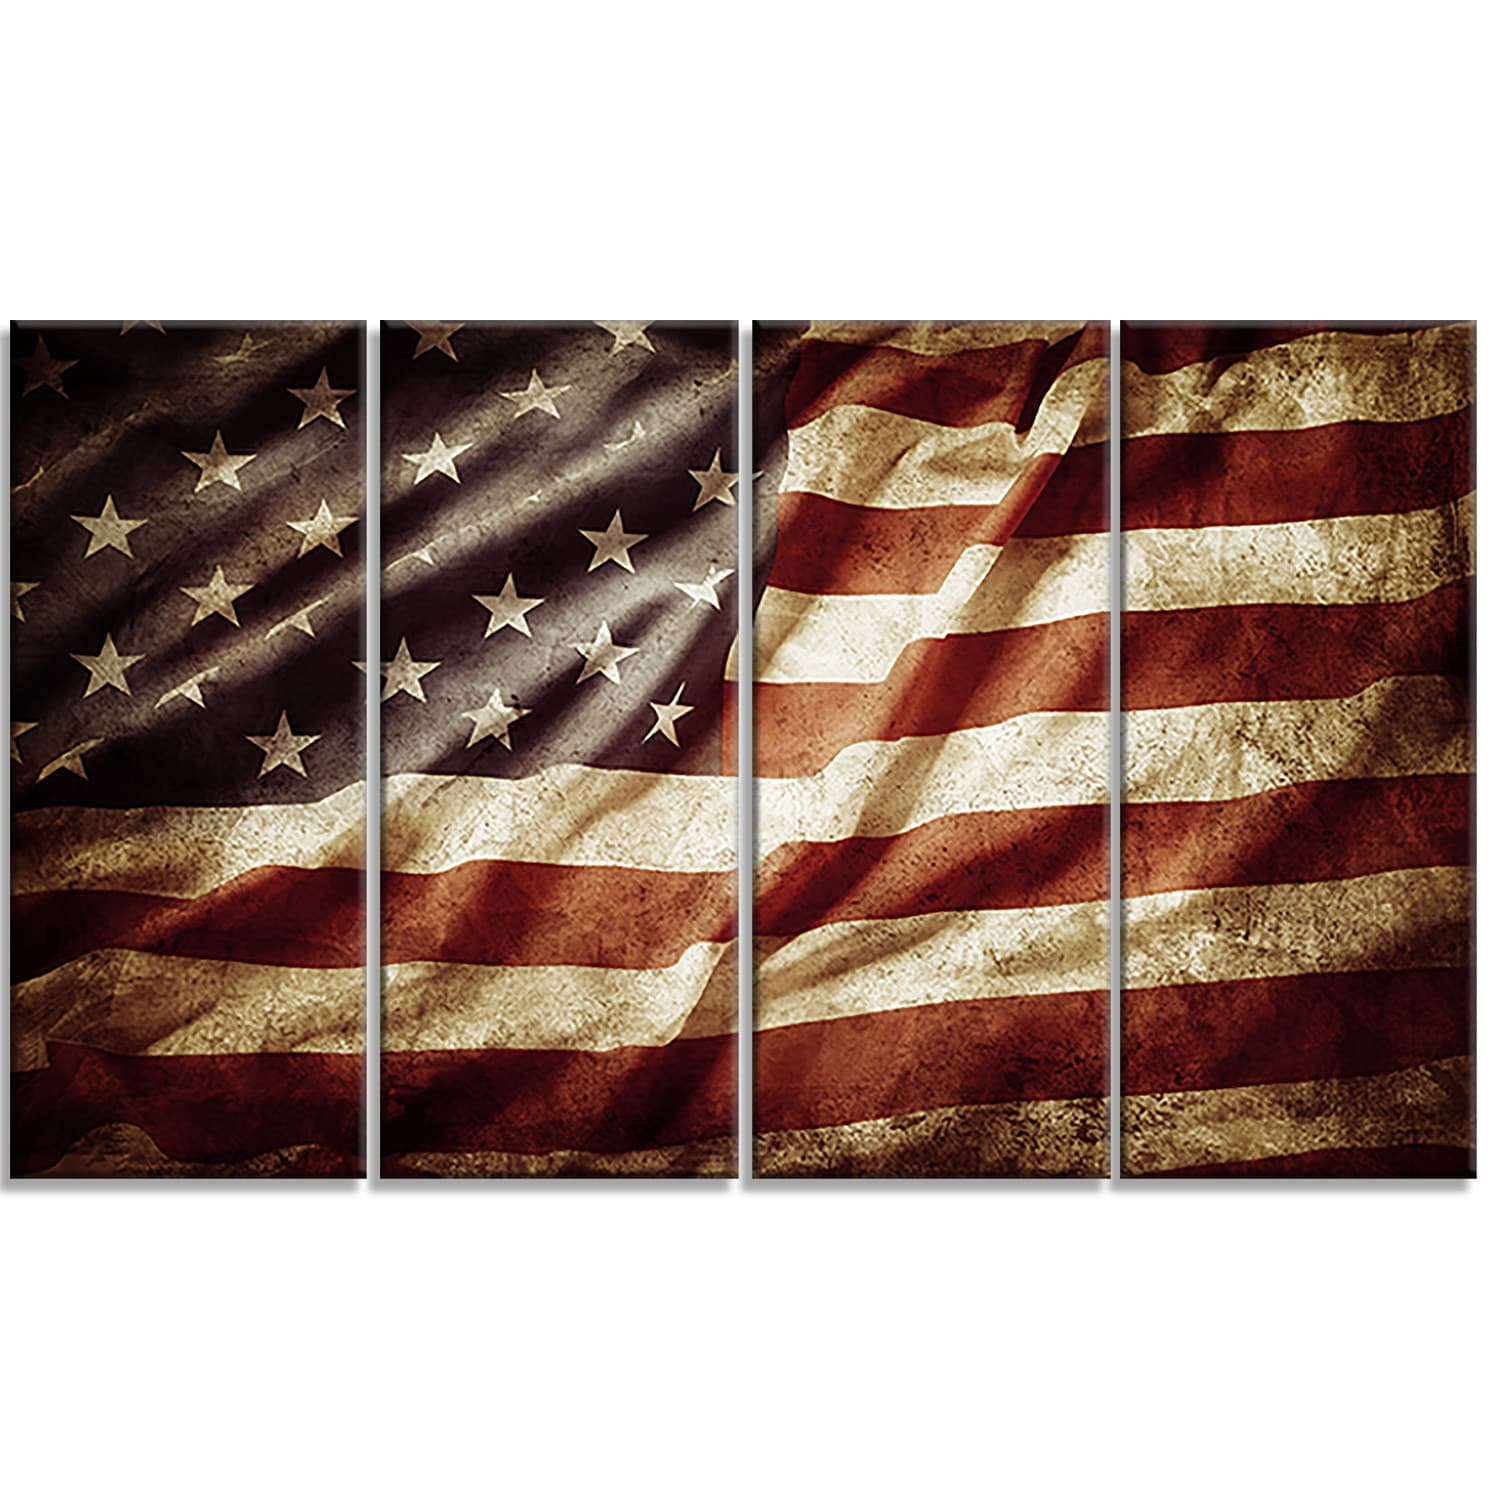 Shop designart american flag contemporary metal wall art free shipping today overstock com 11868859